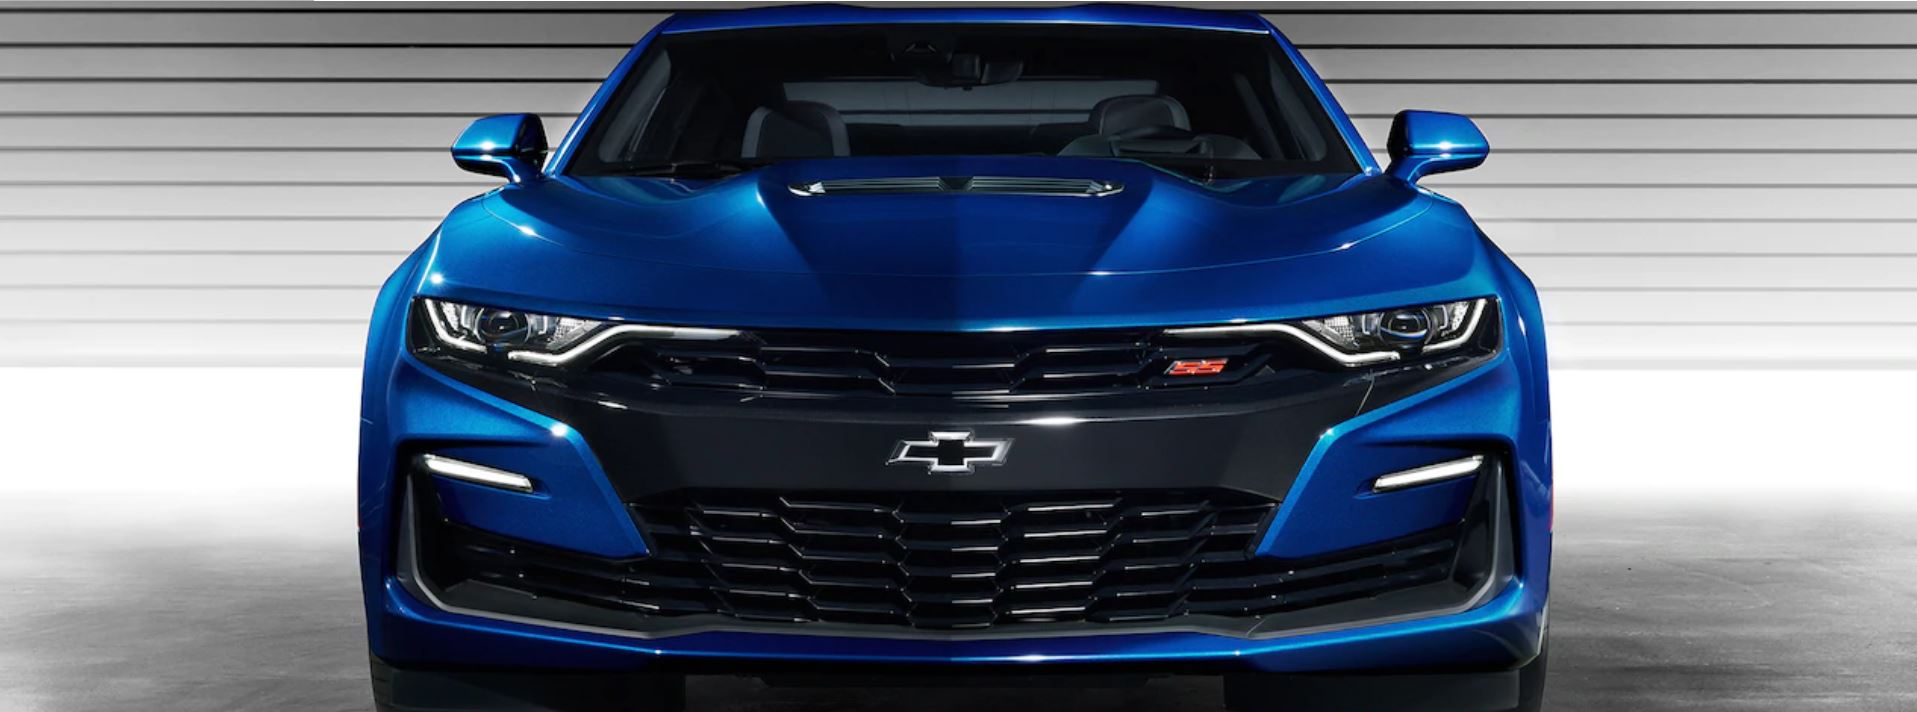 2019 Chevrolet Camaro for Sale near Dallas, TX - David